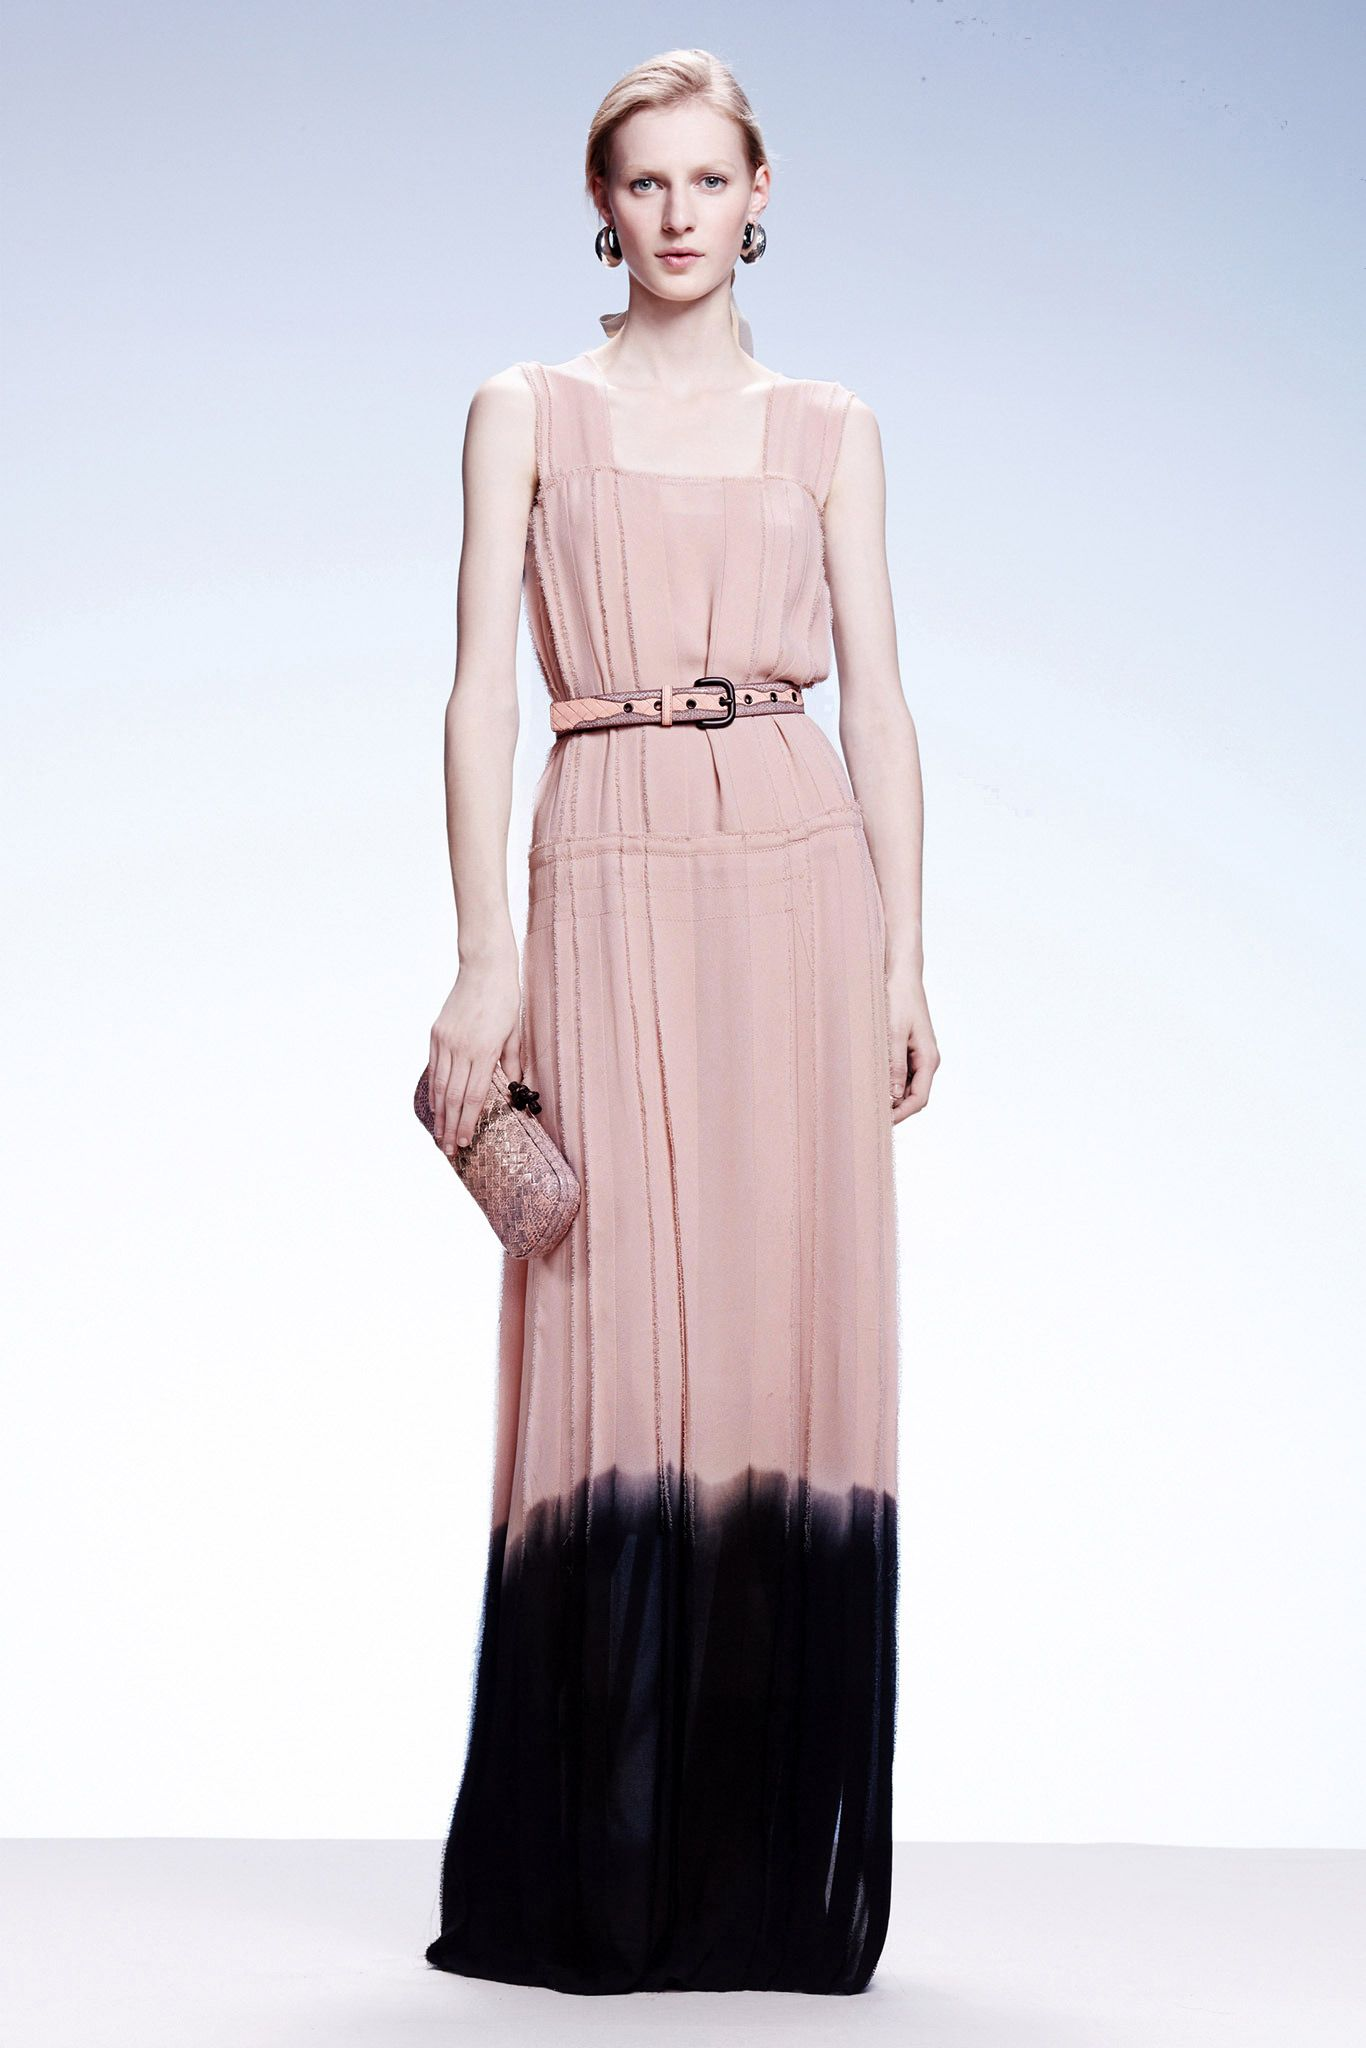 Bottega Veneta Resort 2015